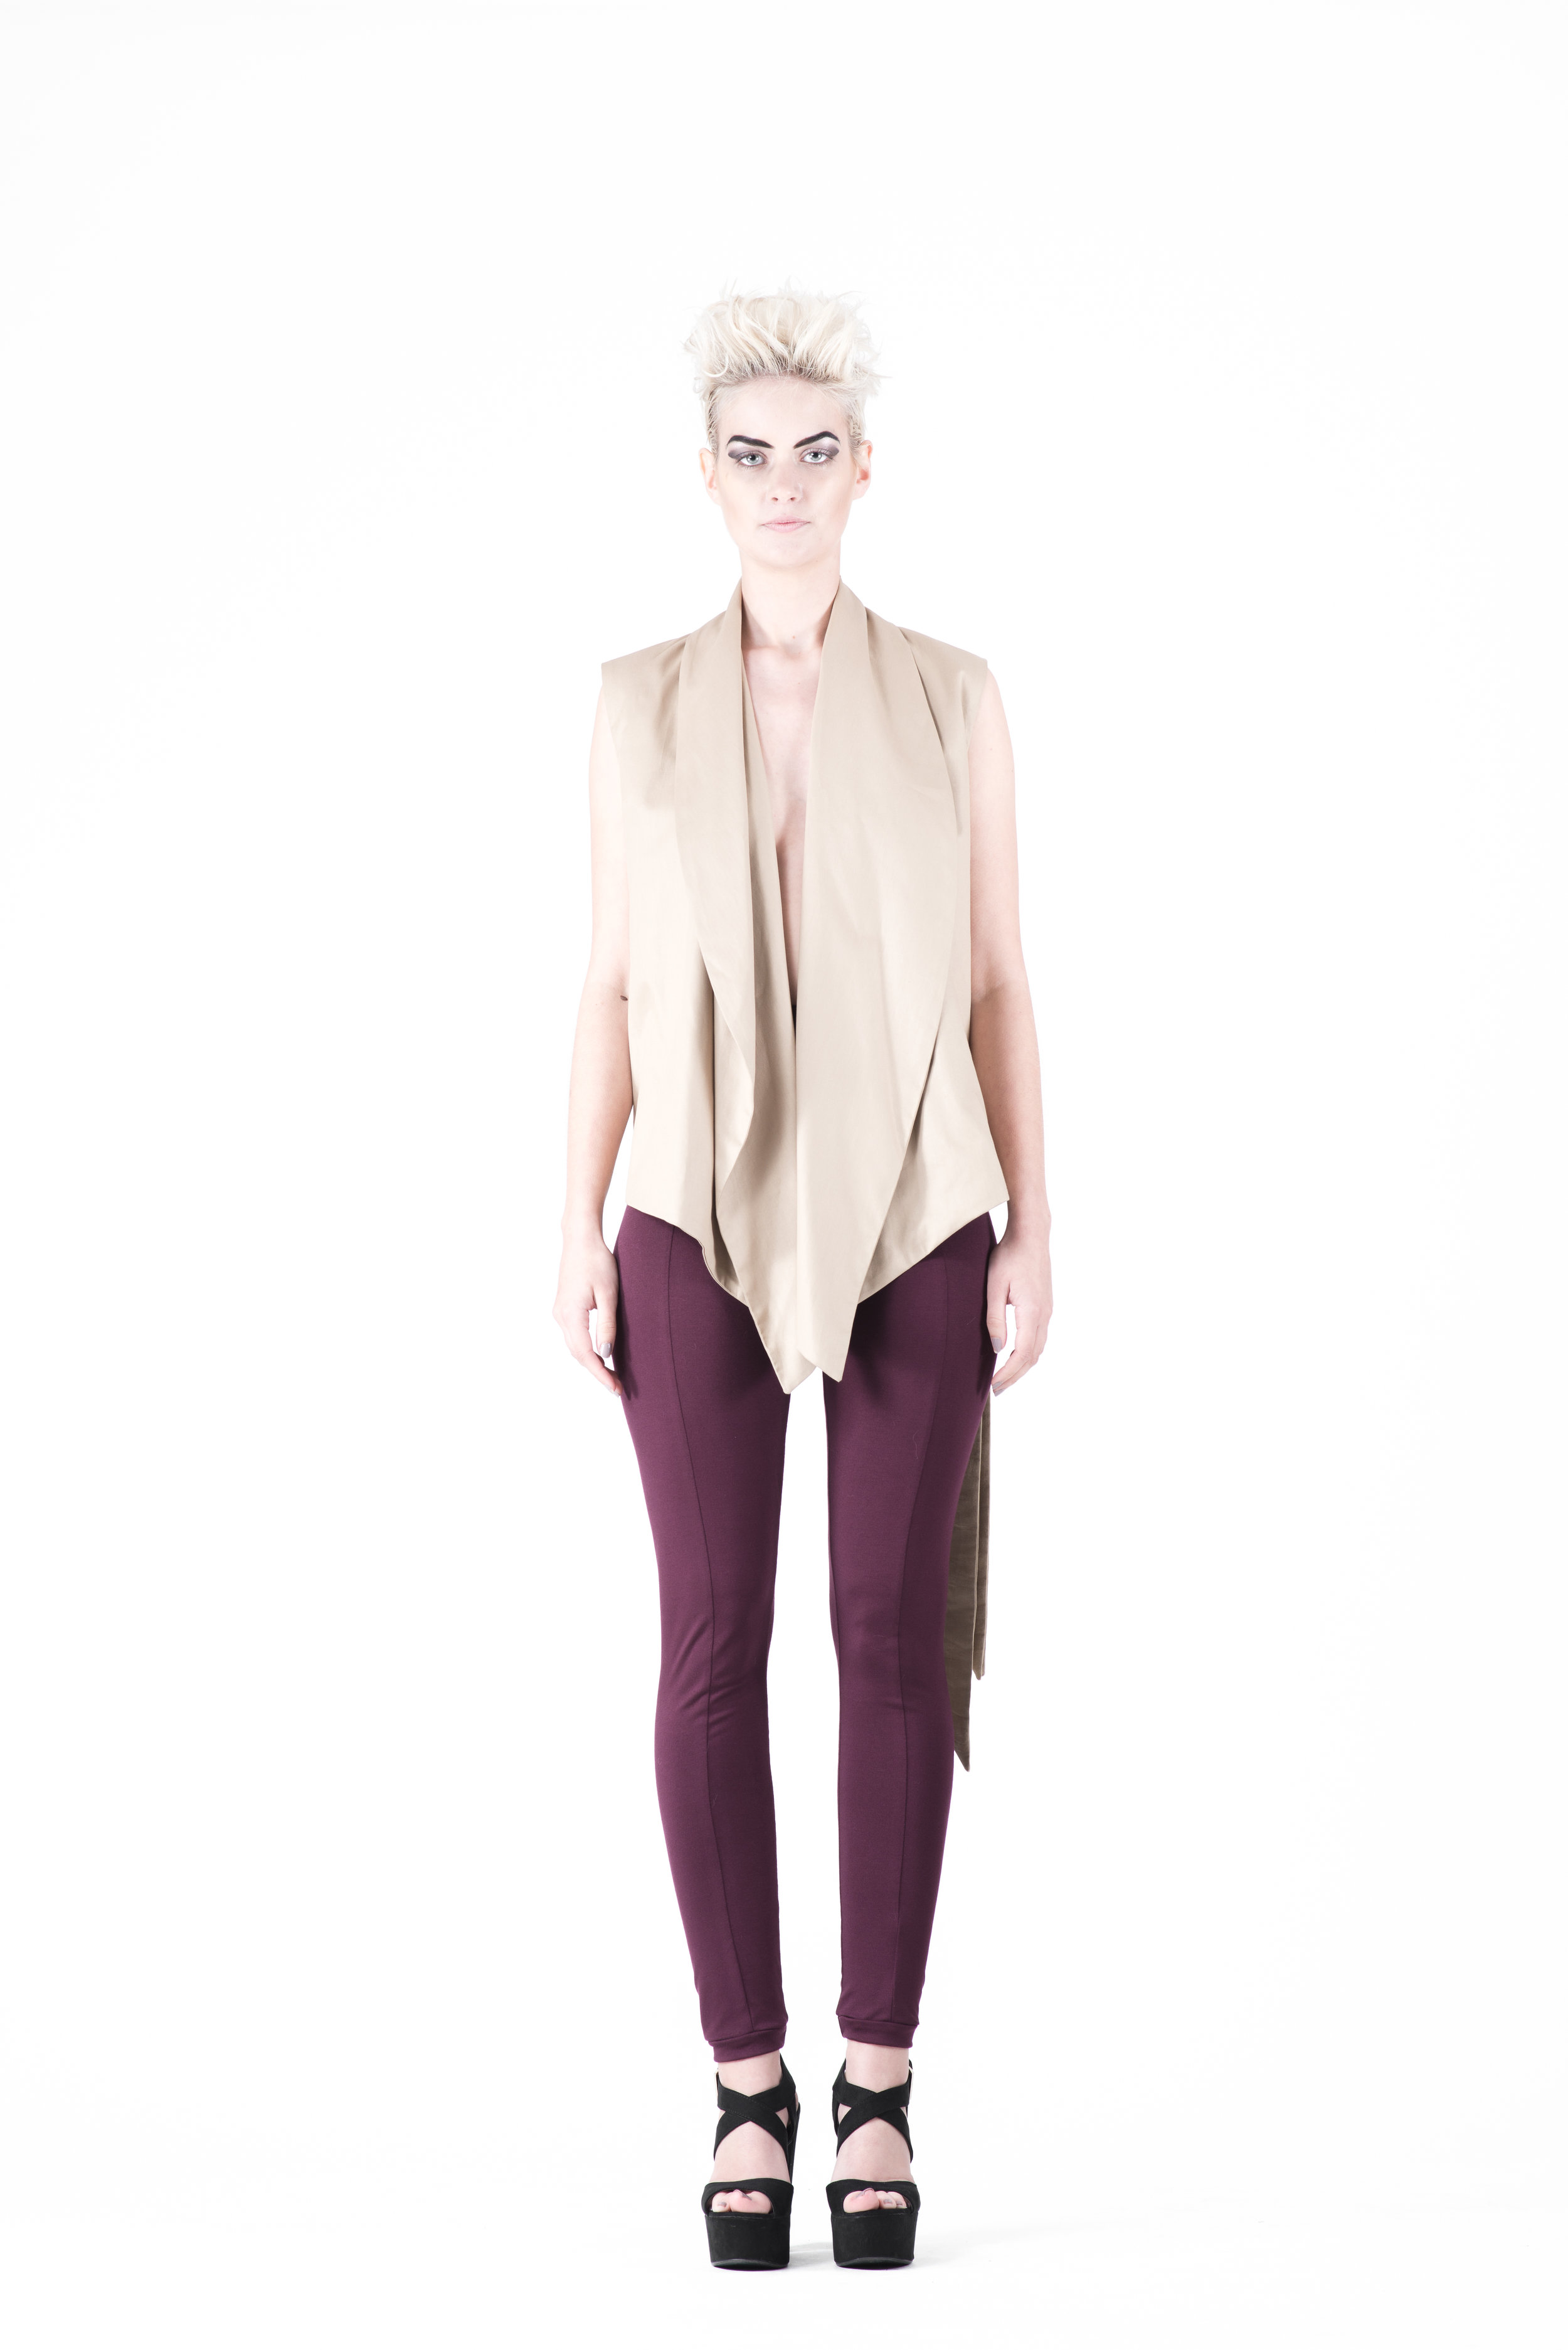 zaramia-ava-zaramiaava-leeds-fashion-designer-ethical-sustainable-tailored-minimalist-mioka-beige-top-versatile-rei-plum-legginges-drape-cowl-styling-womenswear-models-photoshoot-59